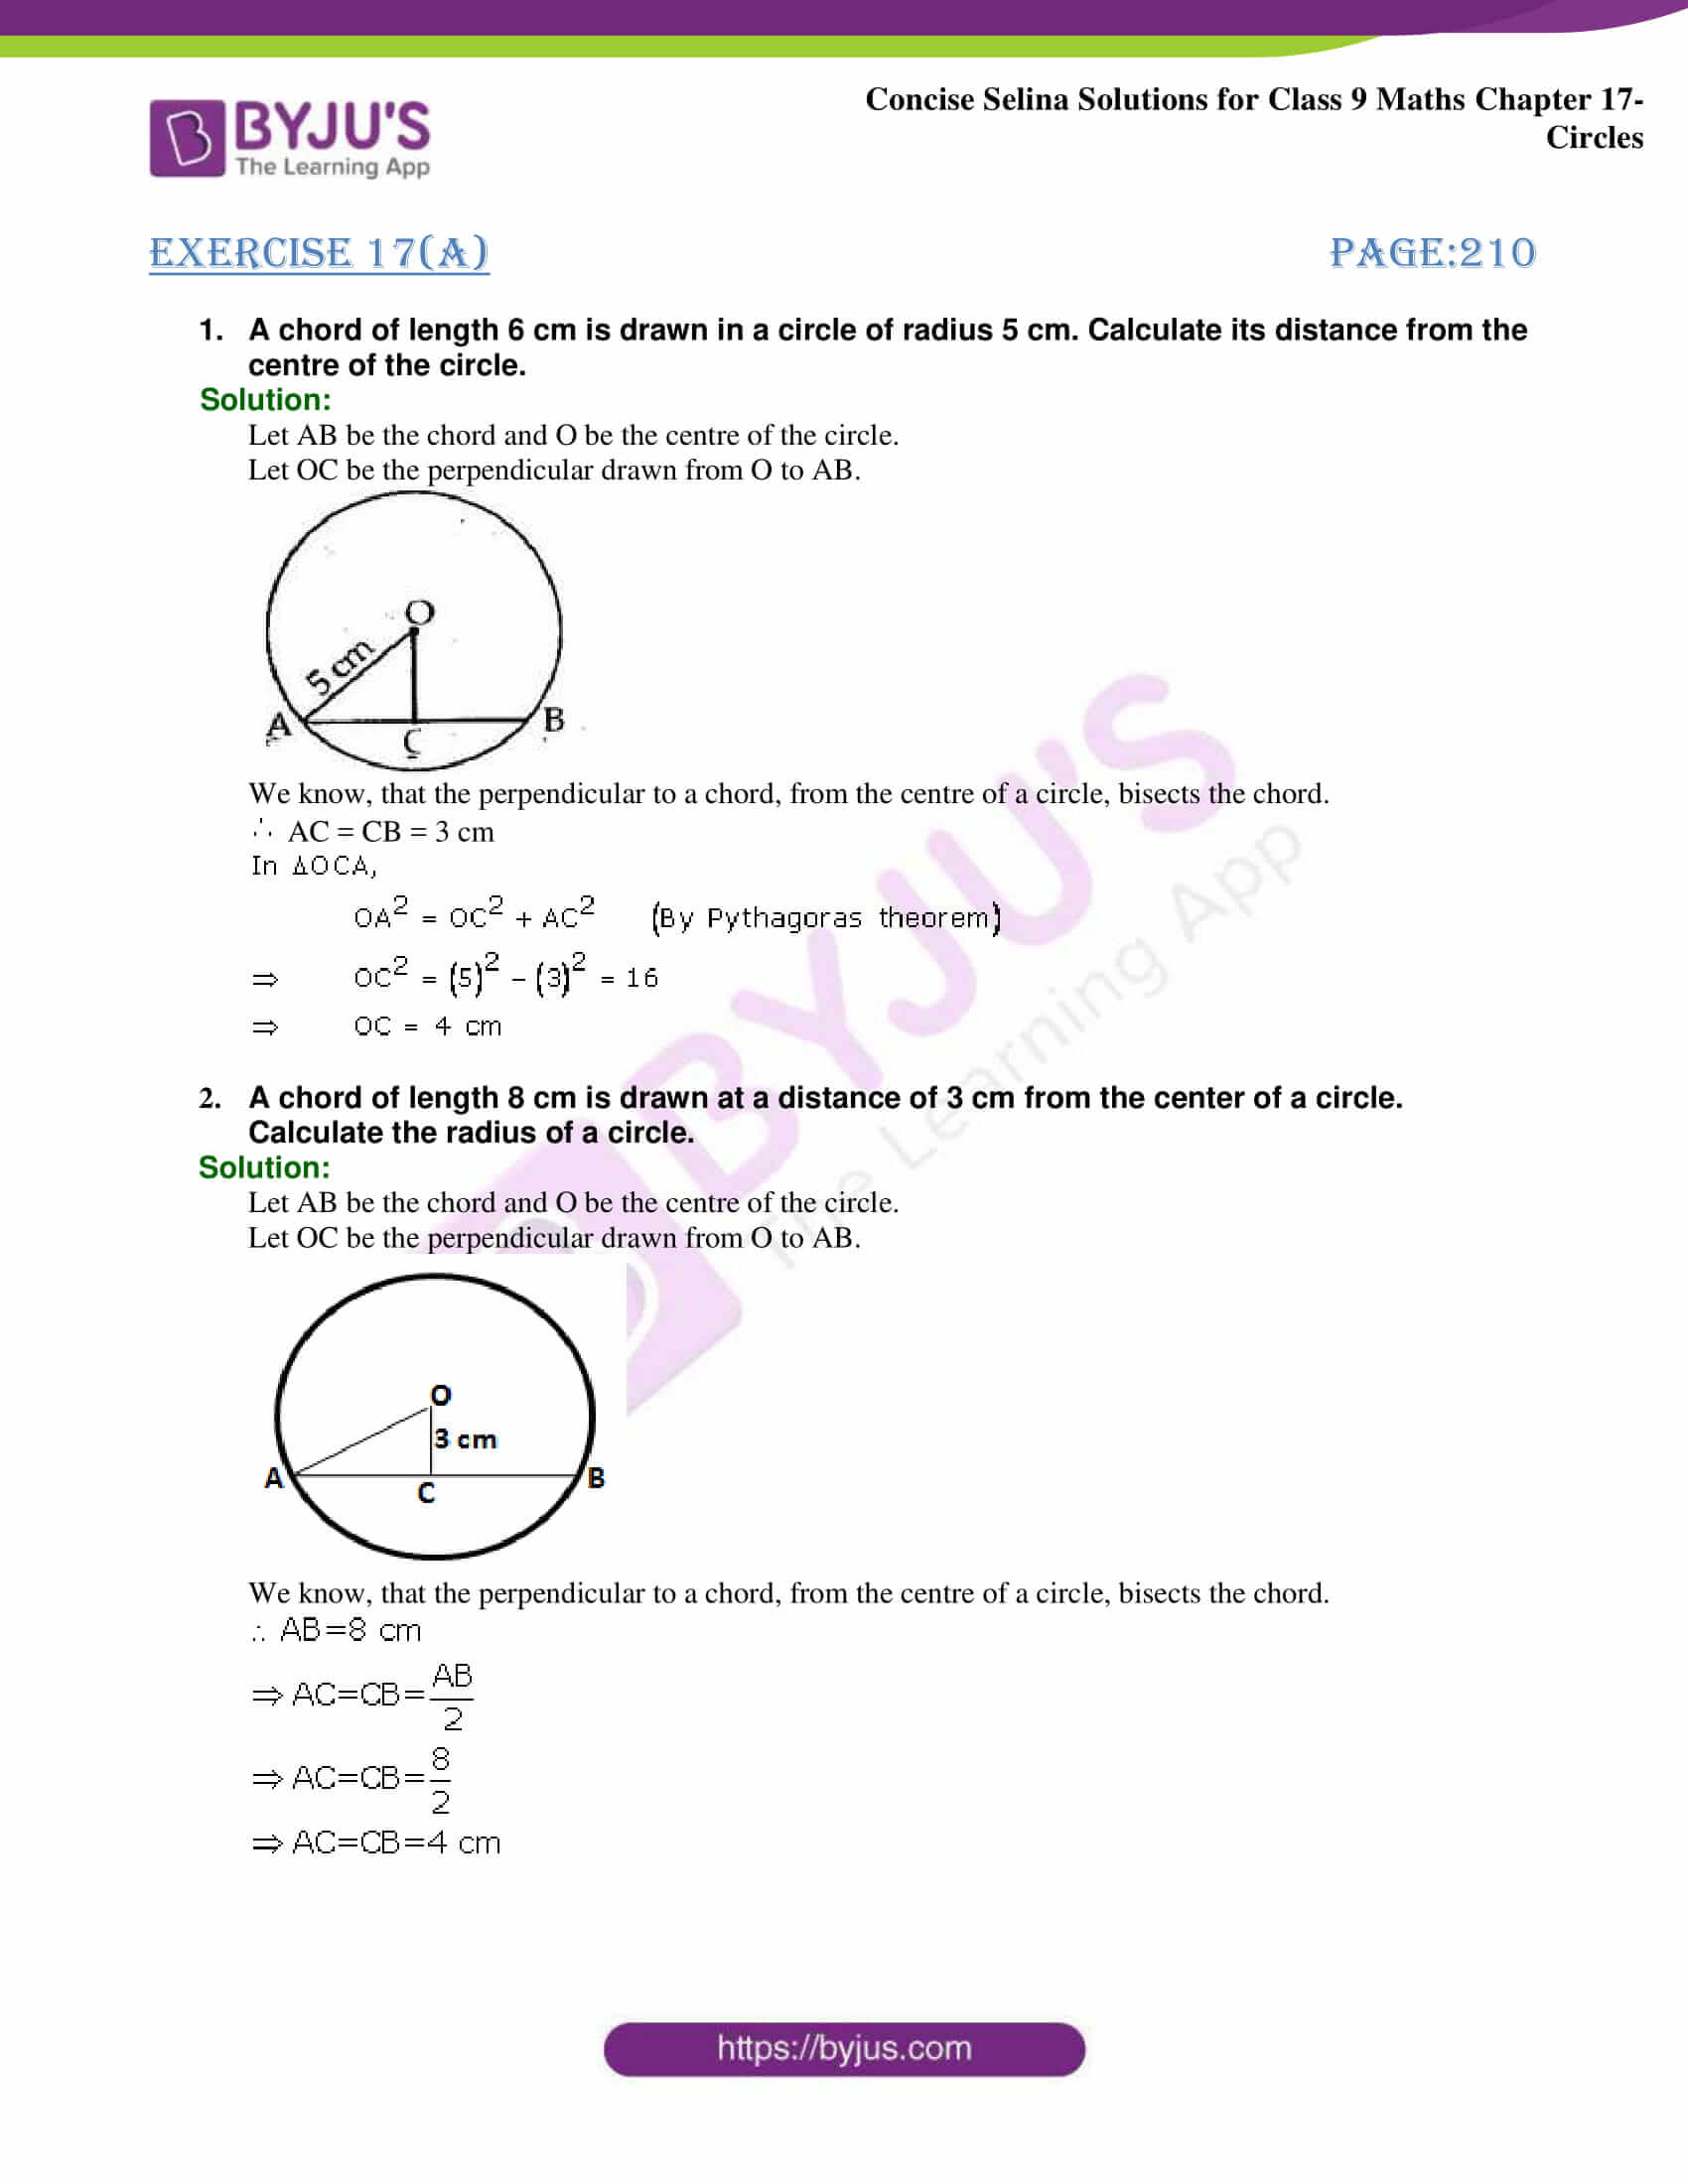 Concise Selina Solutions Class 9 Maths Chapter 17 Circles part 01